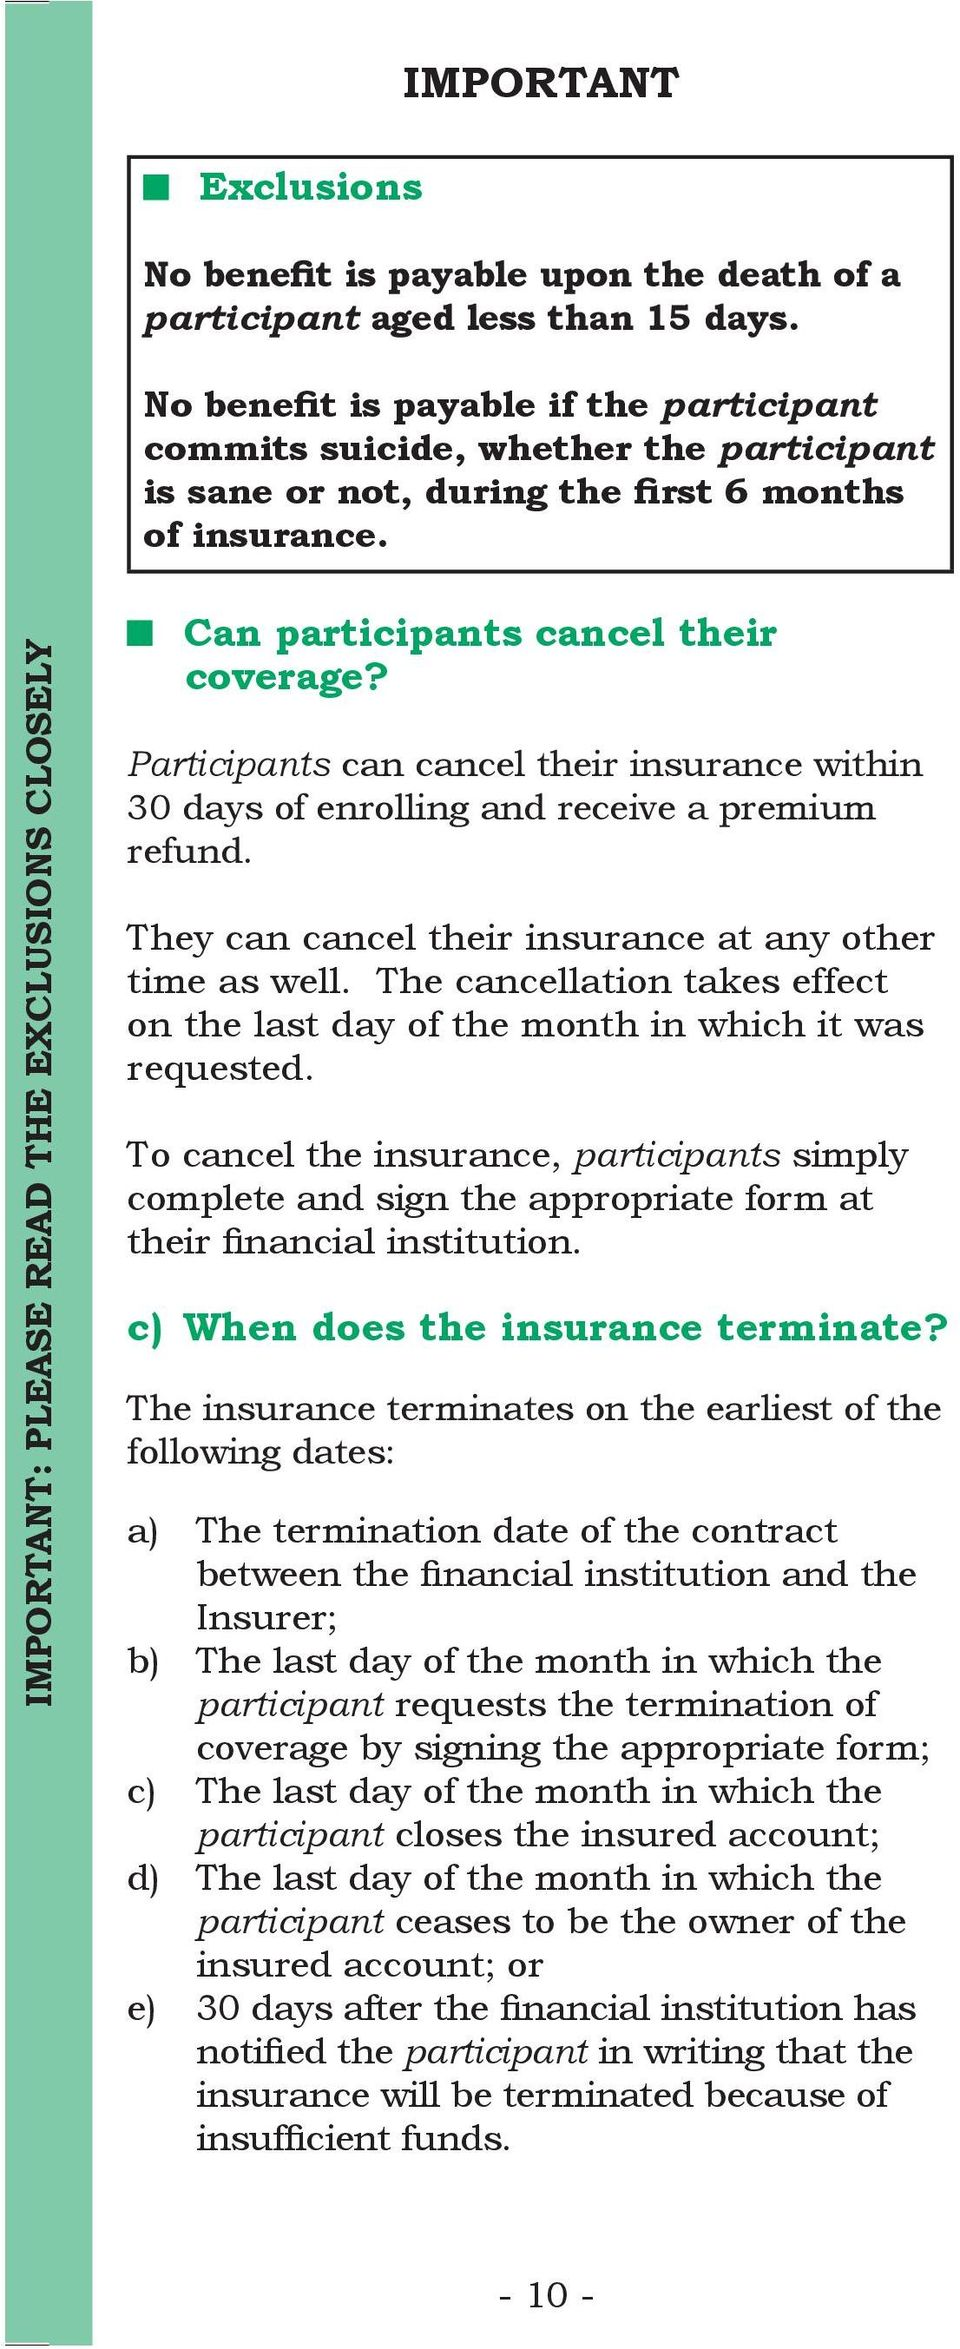 IMPORTANT: PLEASE READ THE EXCLUSIONS CLOSELY Can participants cancel their coverage? Participants can cancel their insurance within 30 days of enrolling and receive a premium refund.